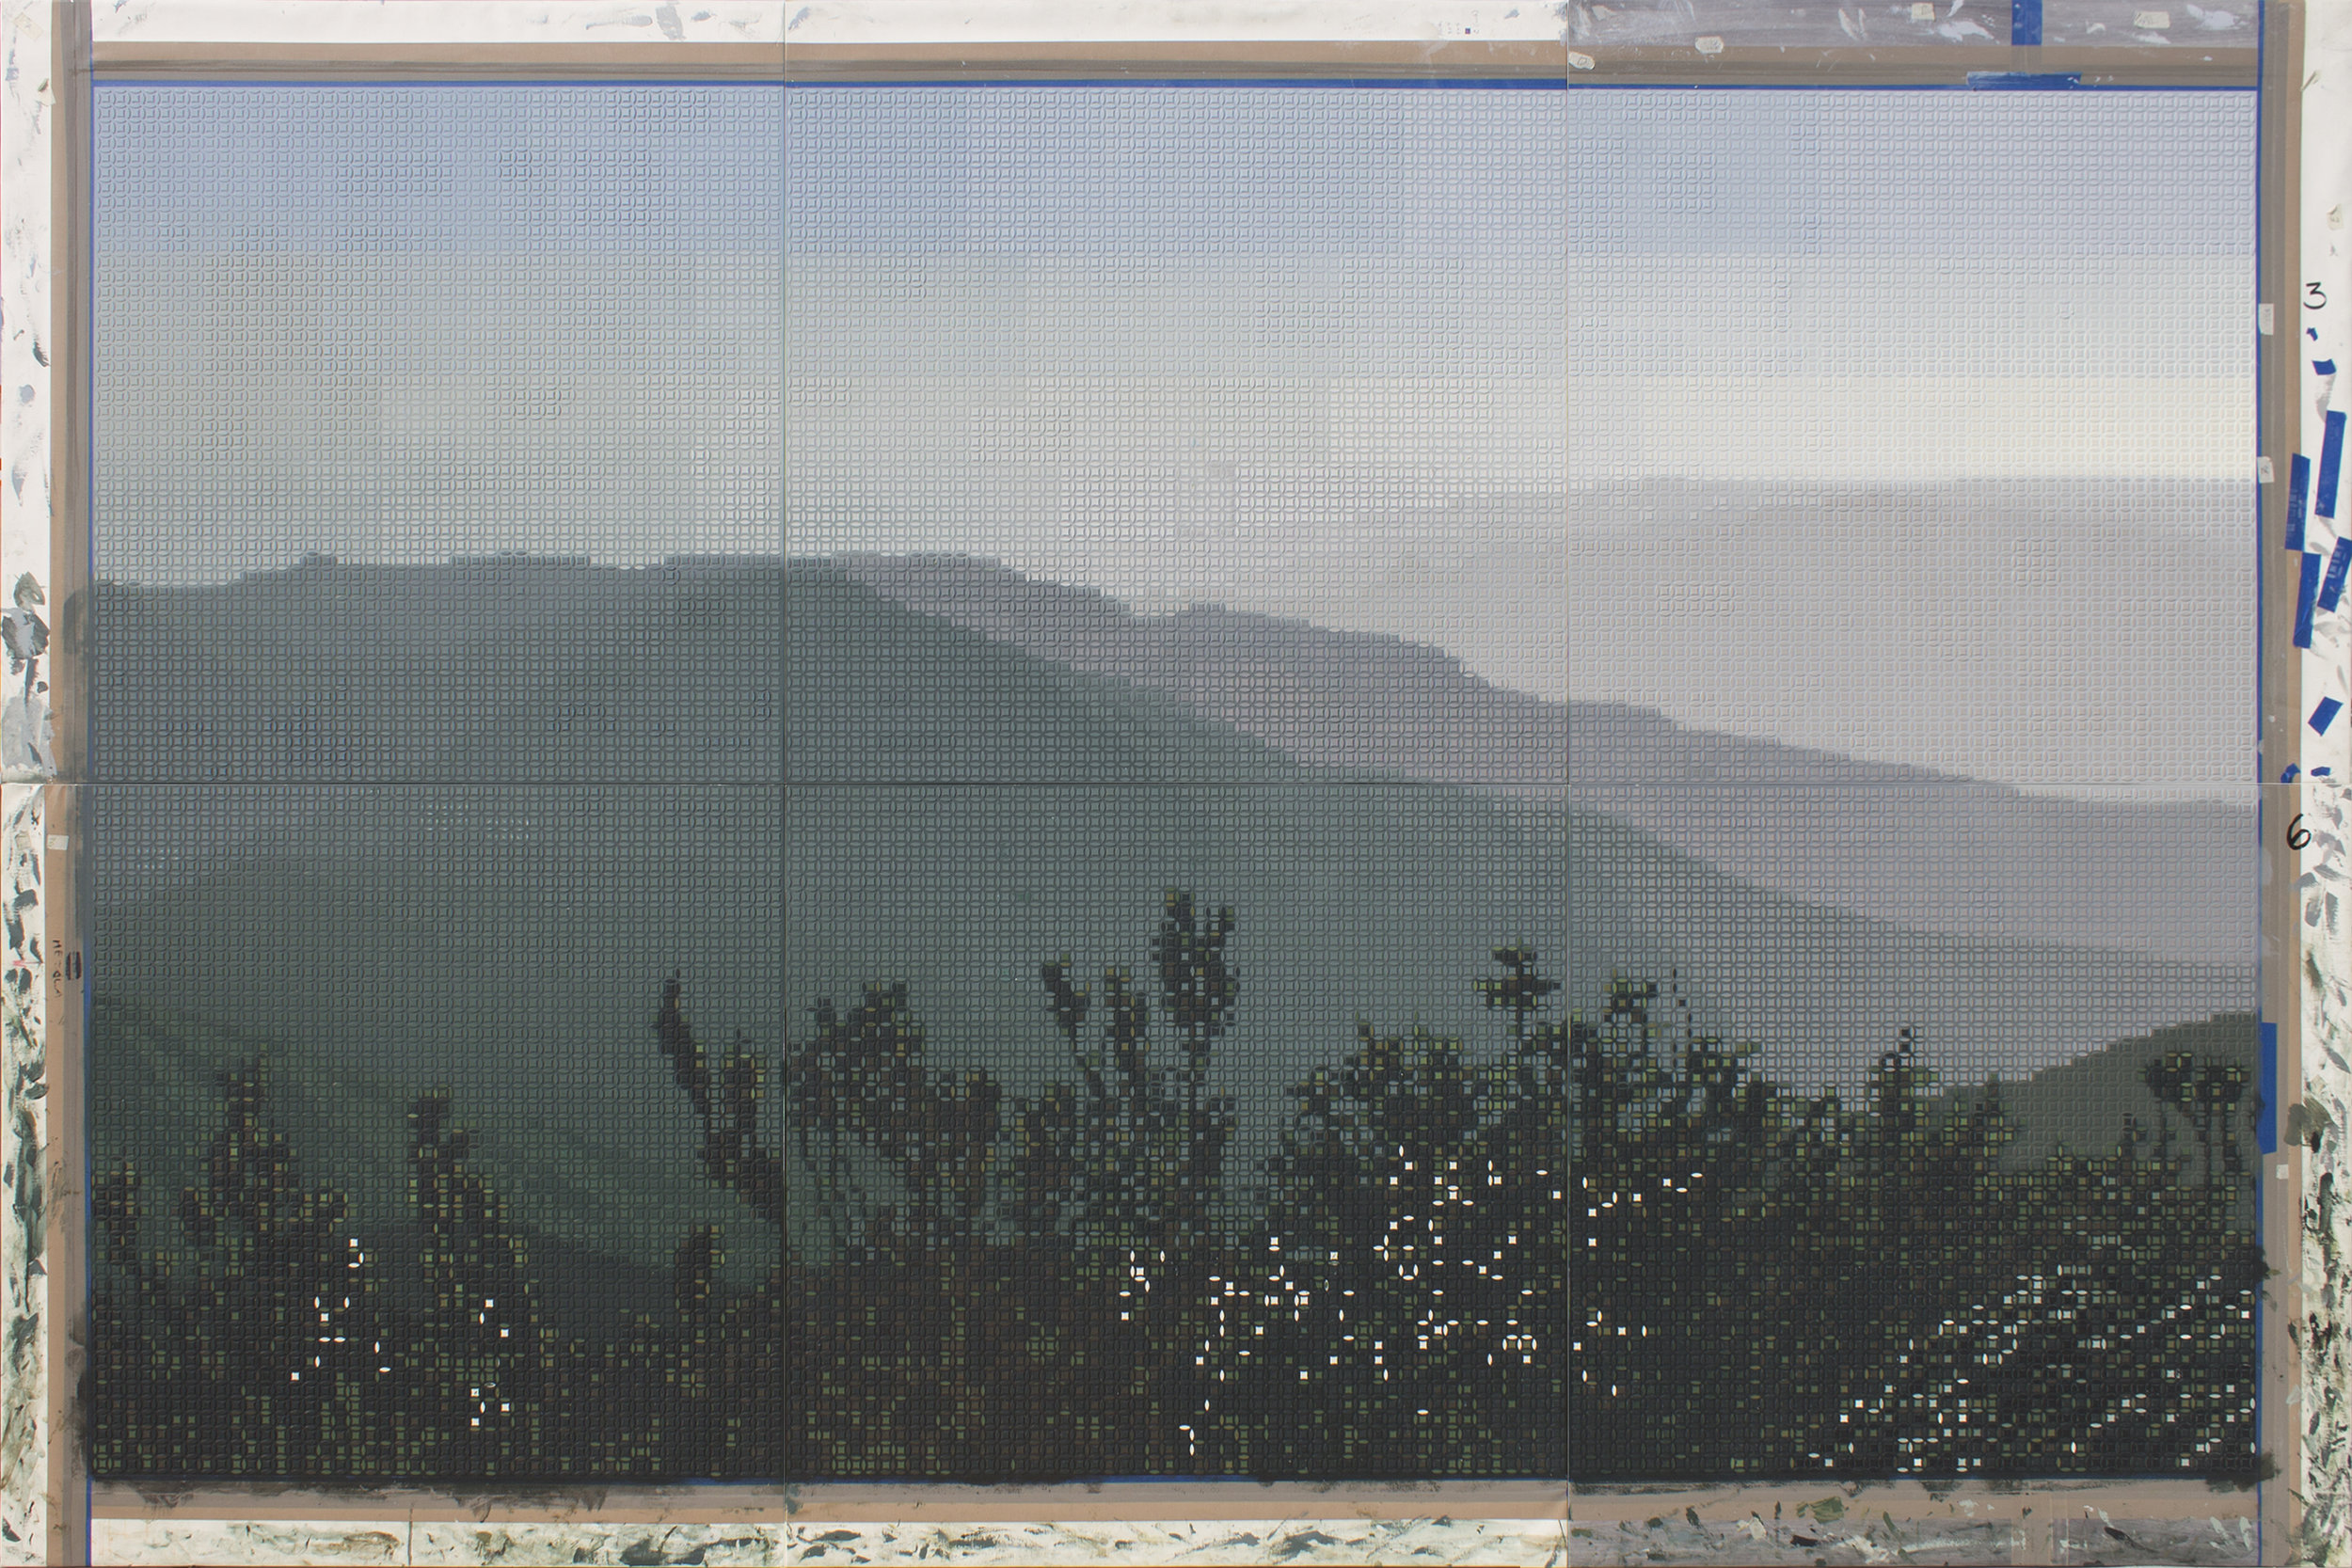 Roger Toledo Bueno,  Amanecer en el Pico Turquino  ( Sunrise at Pico Turquino ), 2018, Acrylic on canvas, 78 3/4 x 118 inches (200 x 300 cm); Comprised by six panels of 39 3/8 x 39 3/8 inches (100 x 100 cm).